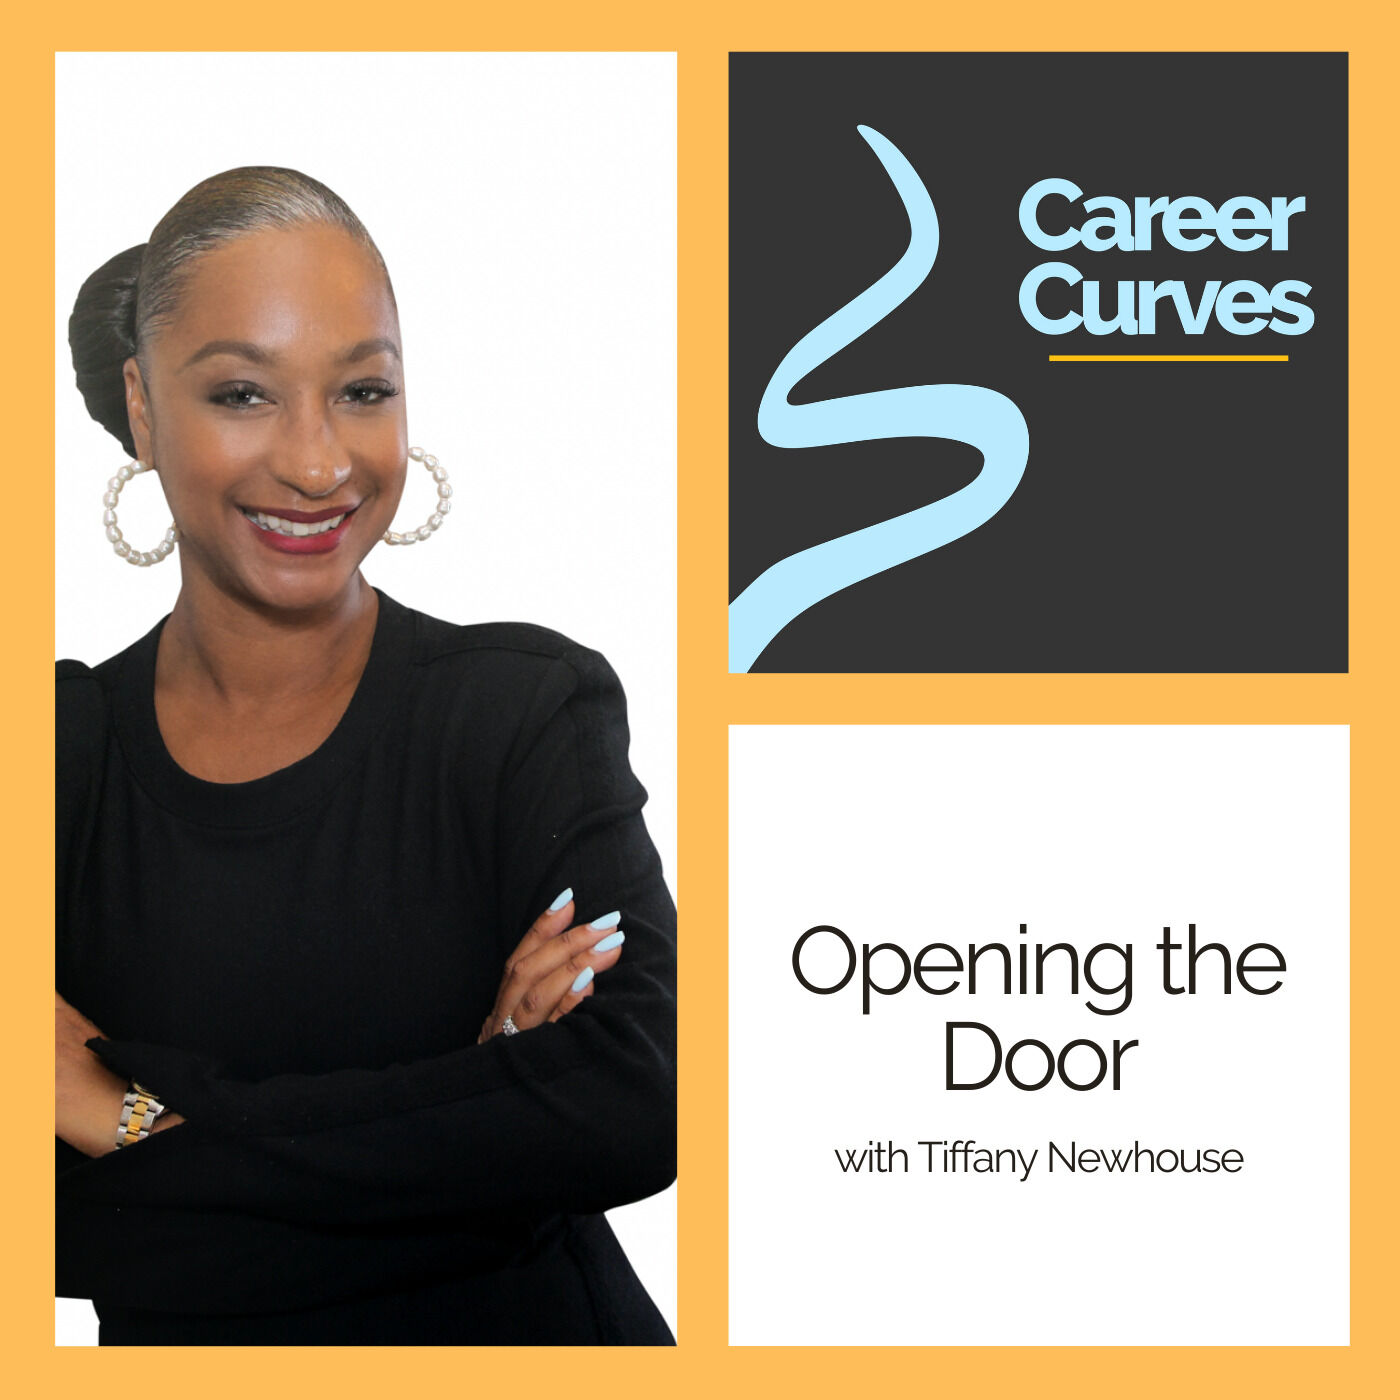 Opening the Door with Tiffany Newhouse